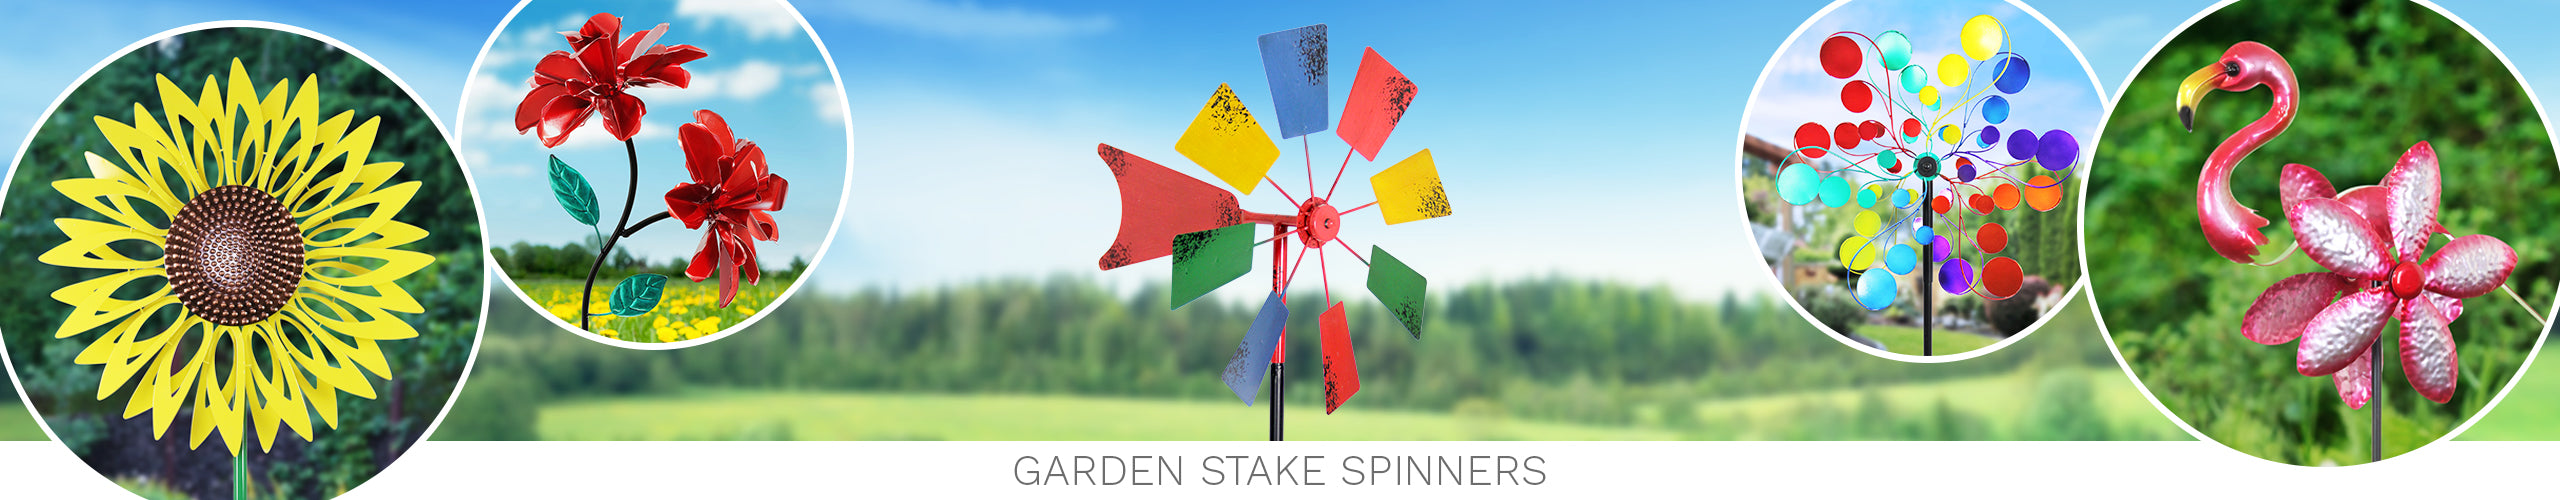 Garden Stake Spinners